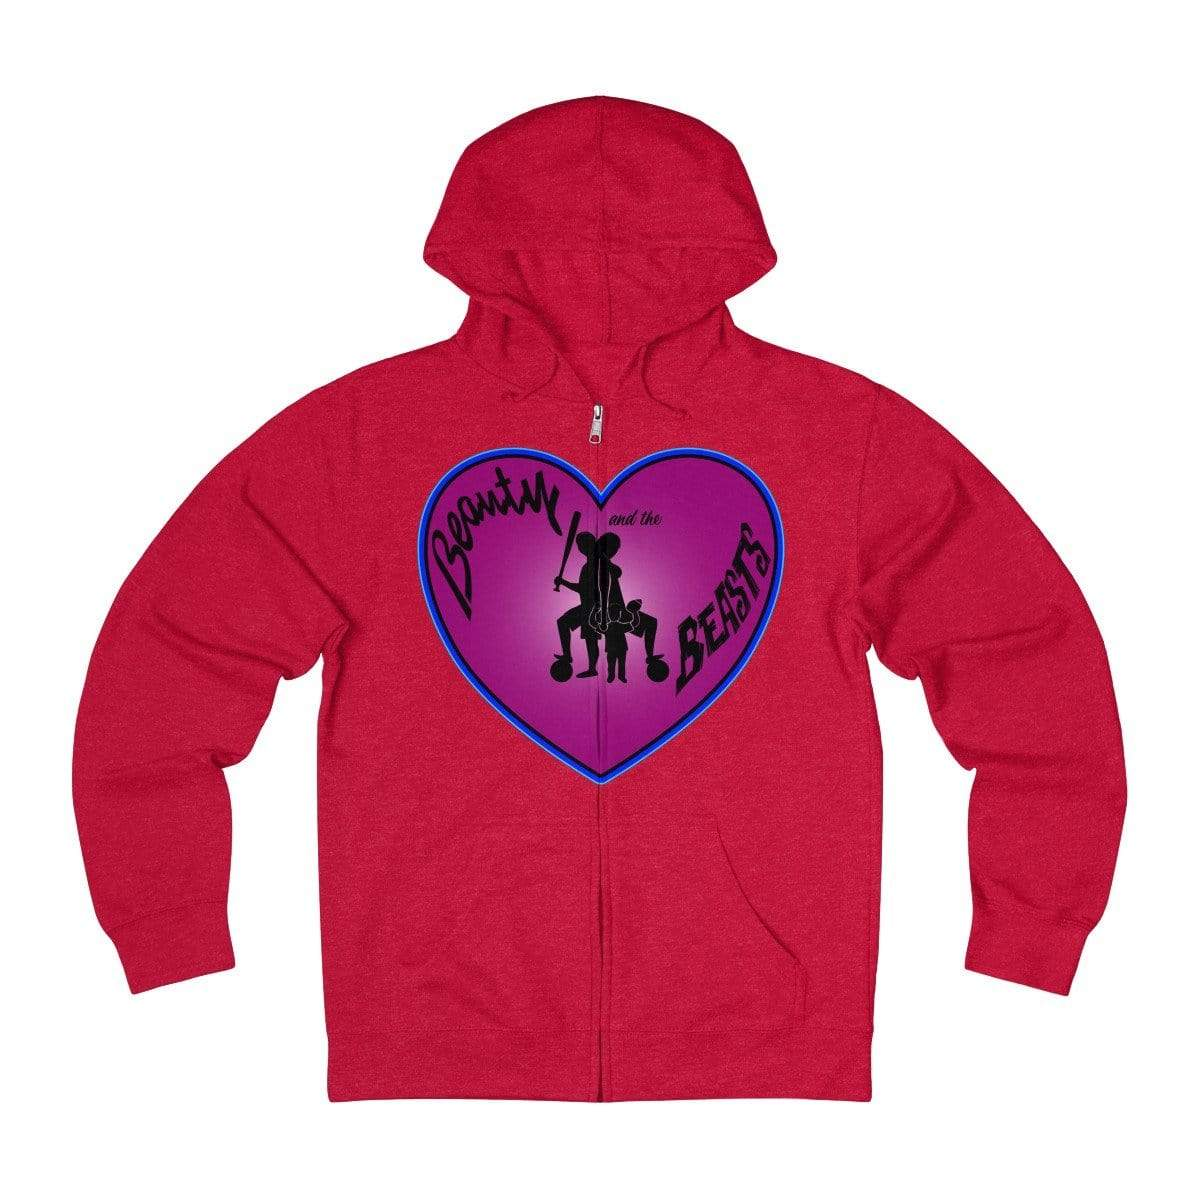 Plumskum Hoodie Red Heather / XS Sports Mother of Twins + French Terry Zip Hoodie